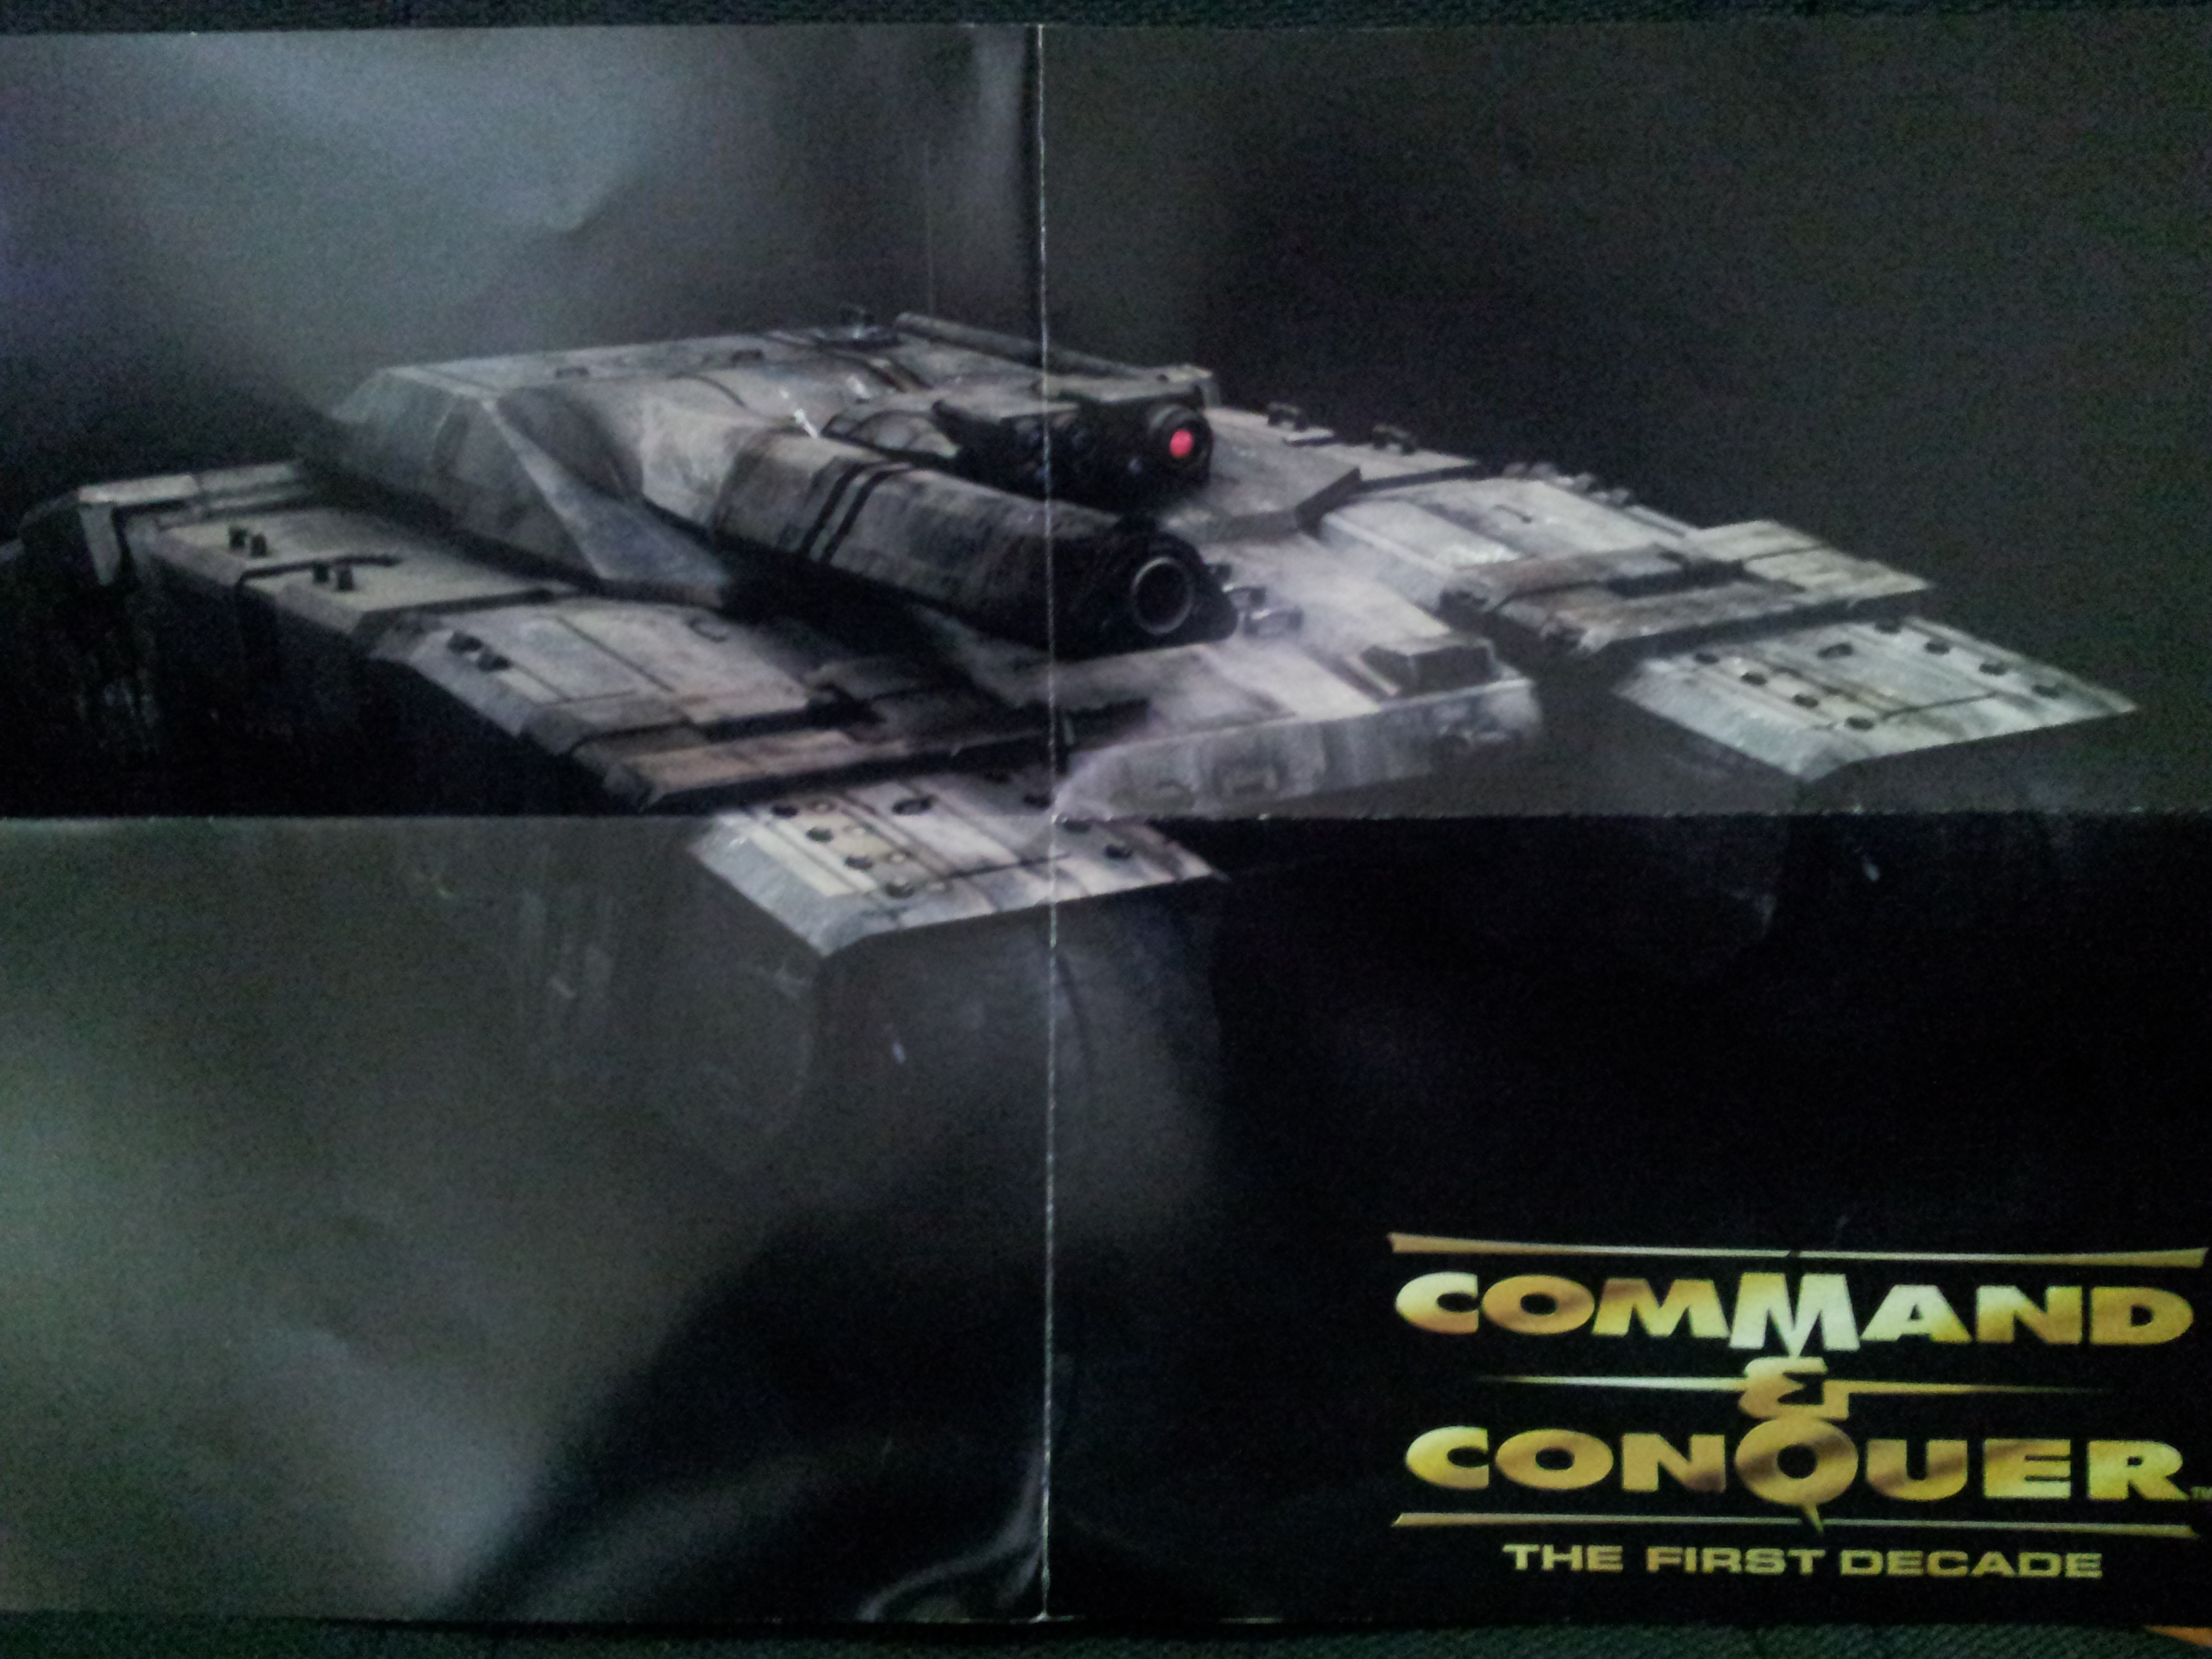 Command & Conquer: The First Decade (PC) - Game Review